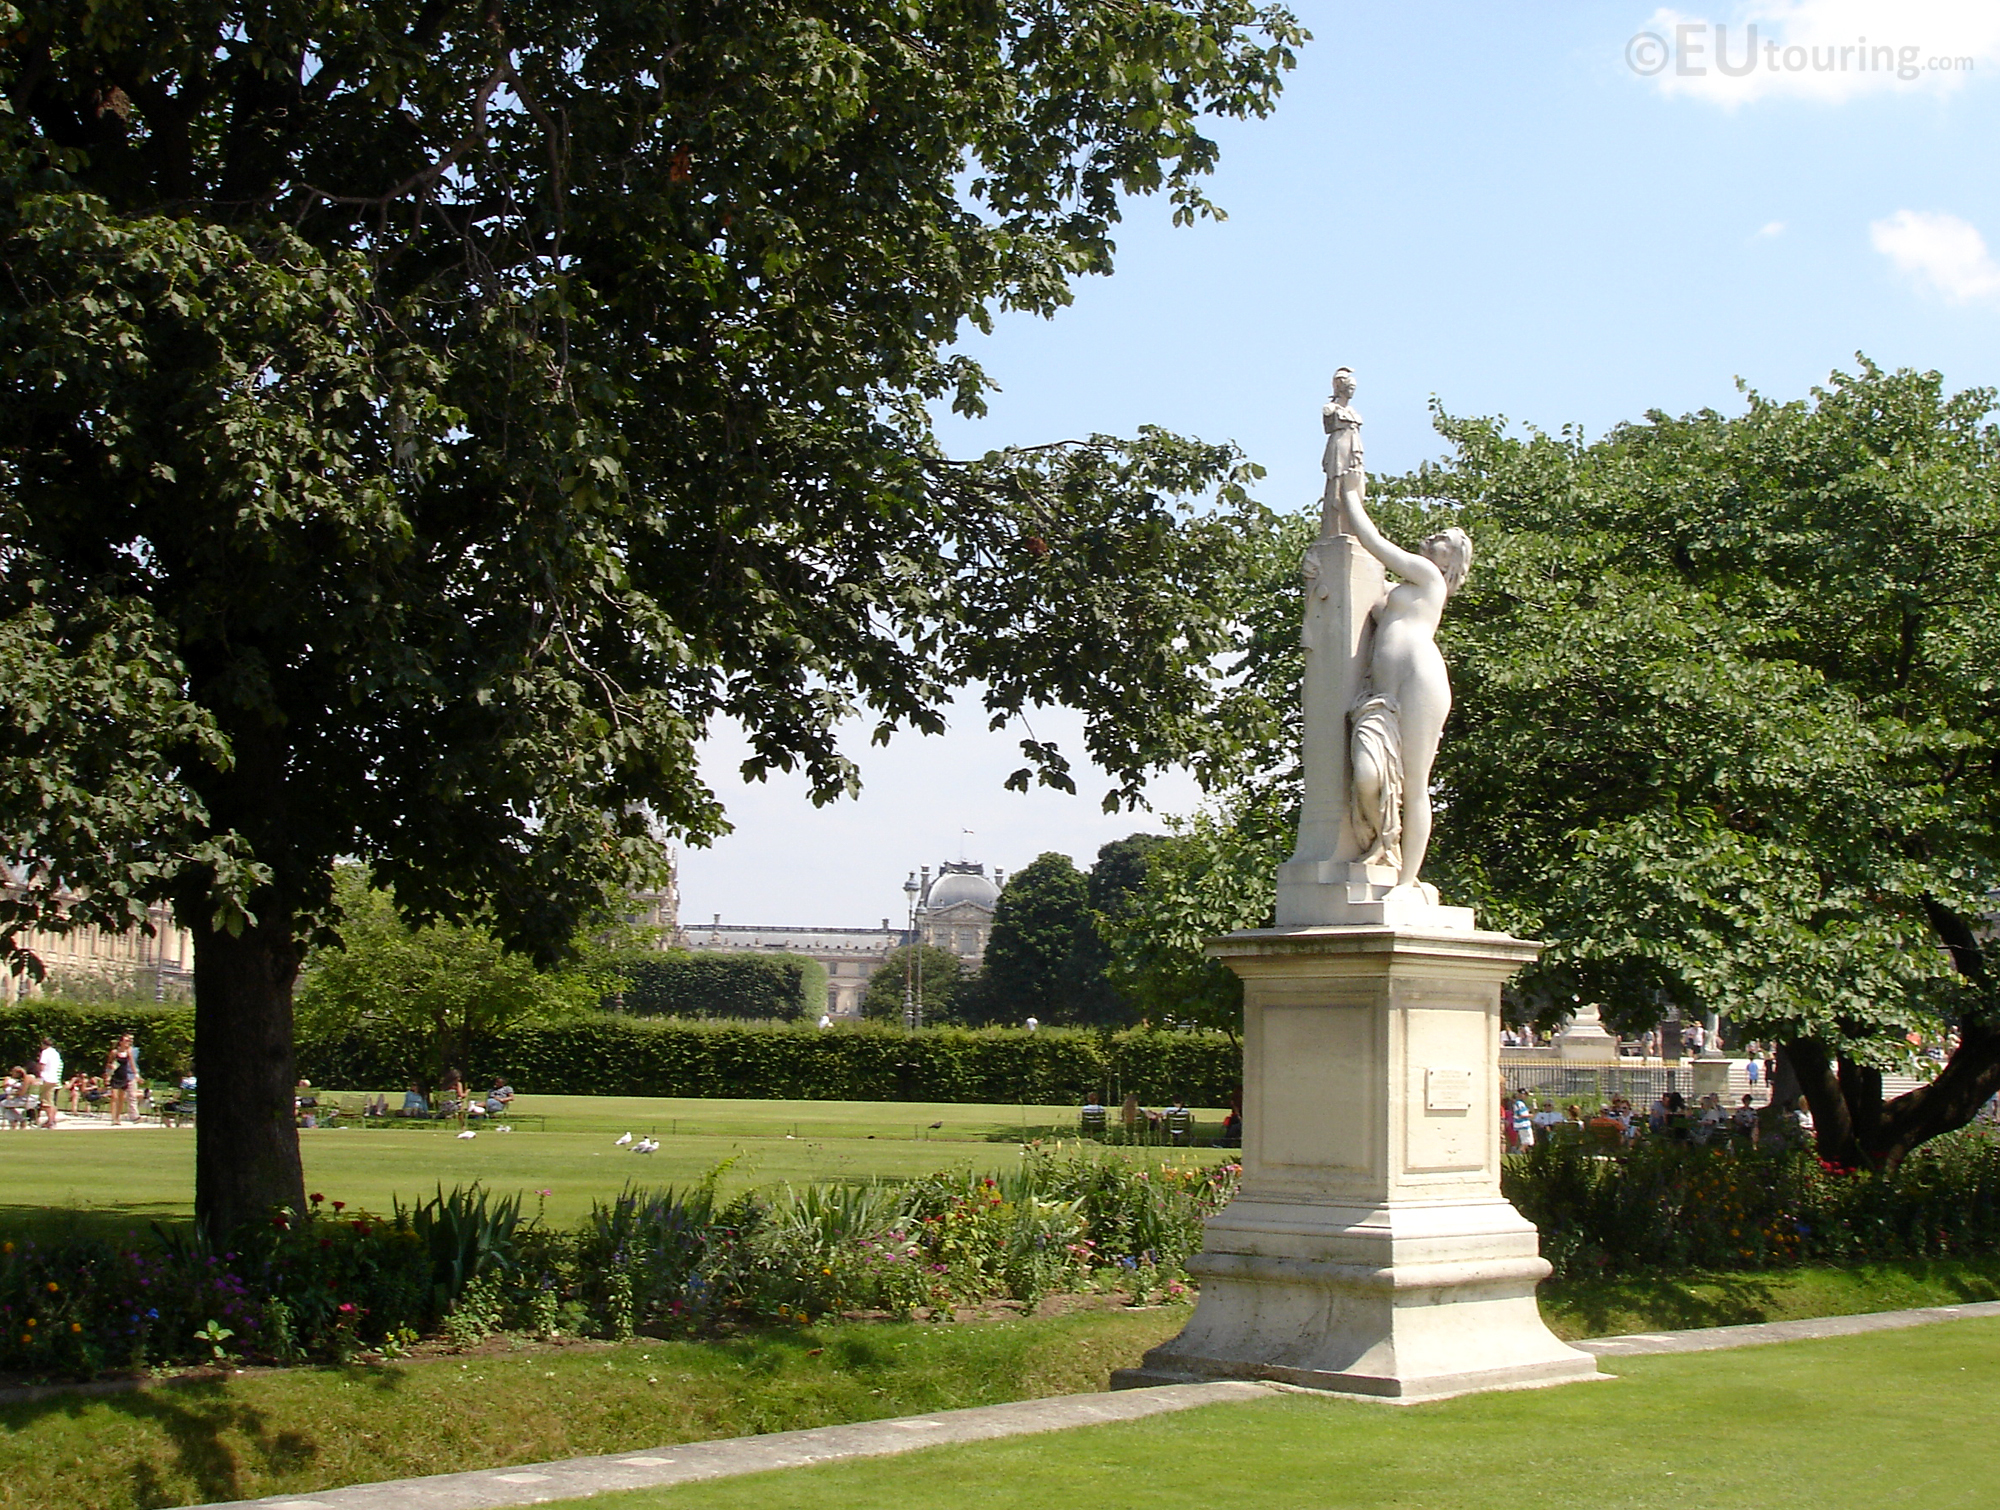 Statue over the green